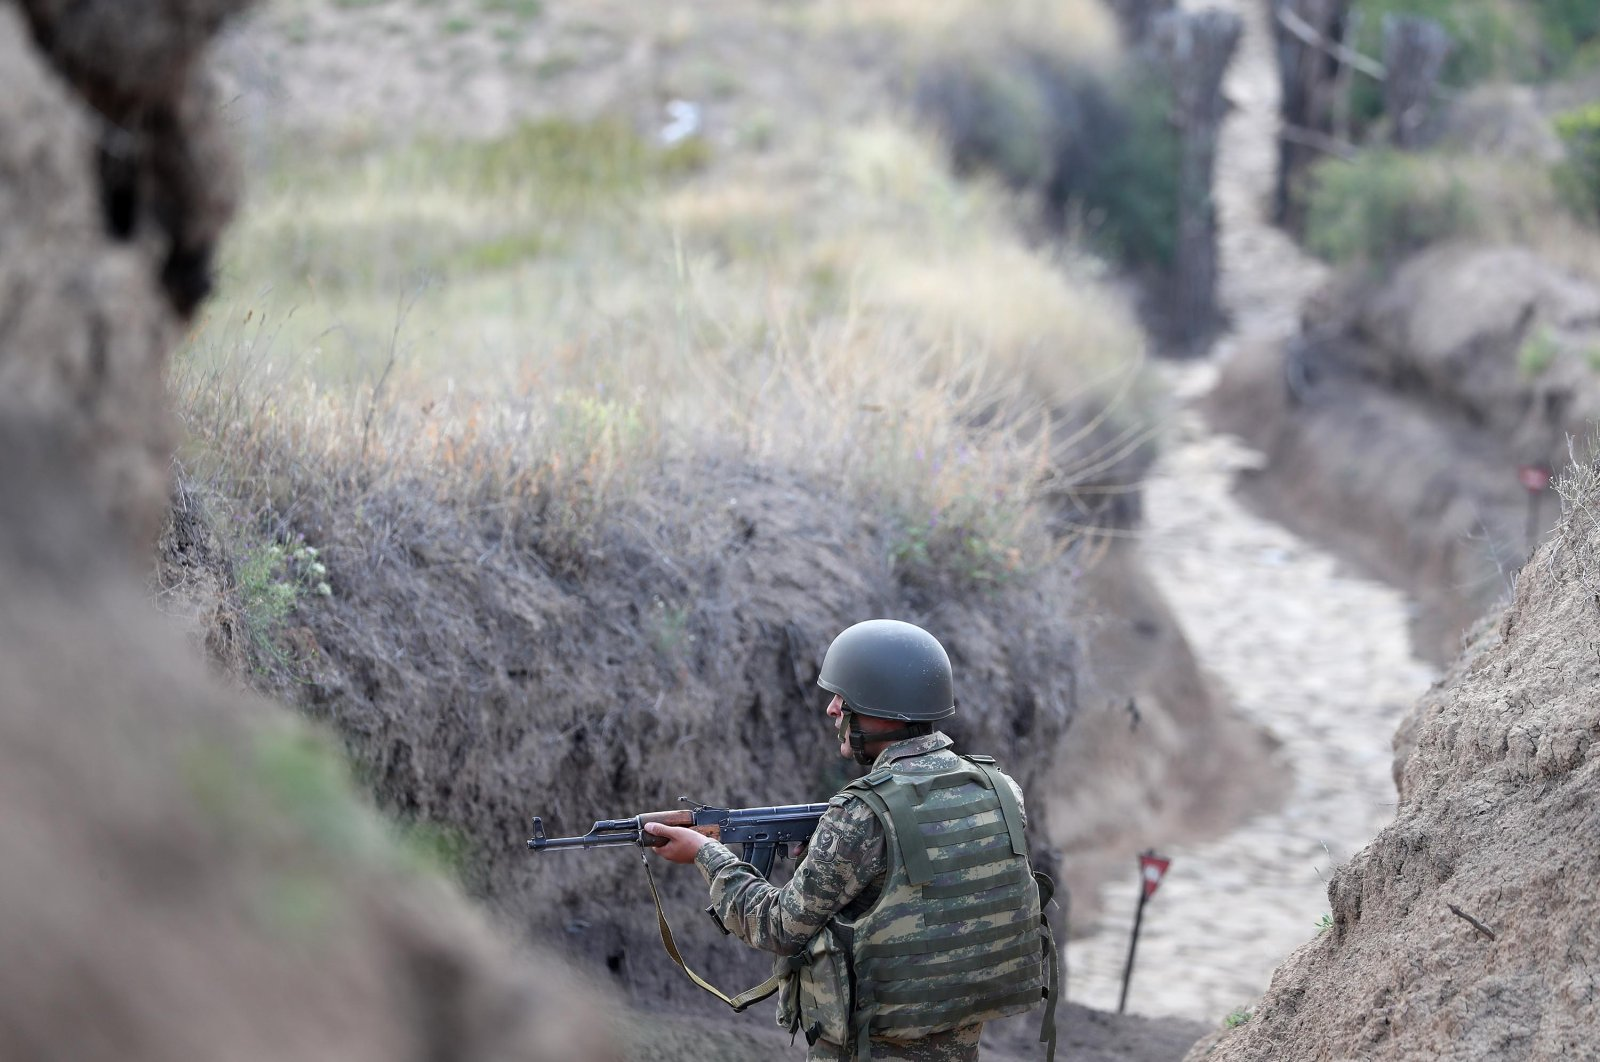 Azerbaijani soldiers patrol at the border of the Tovuz region of Azerbaijan, where deadly clashes with Armenia took place recently, July 26, 2020. (DHA Photo)